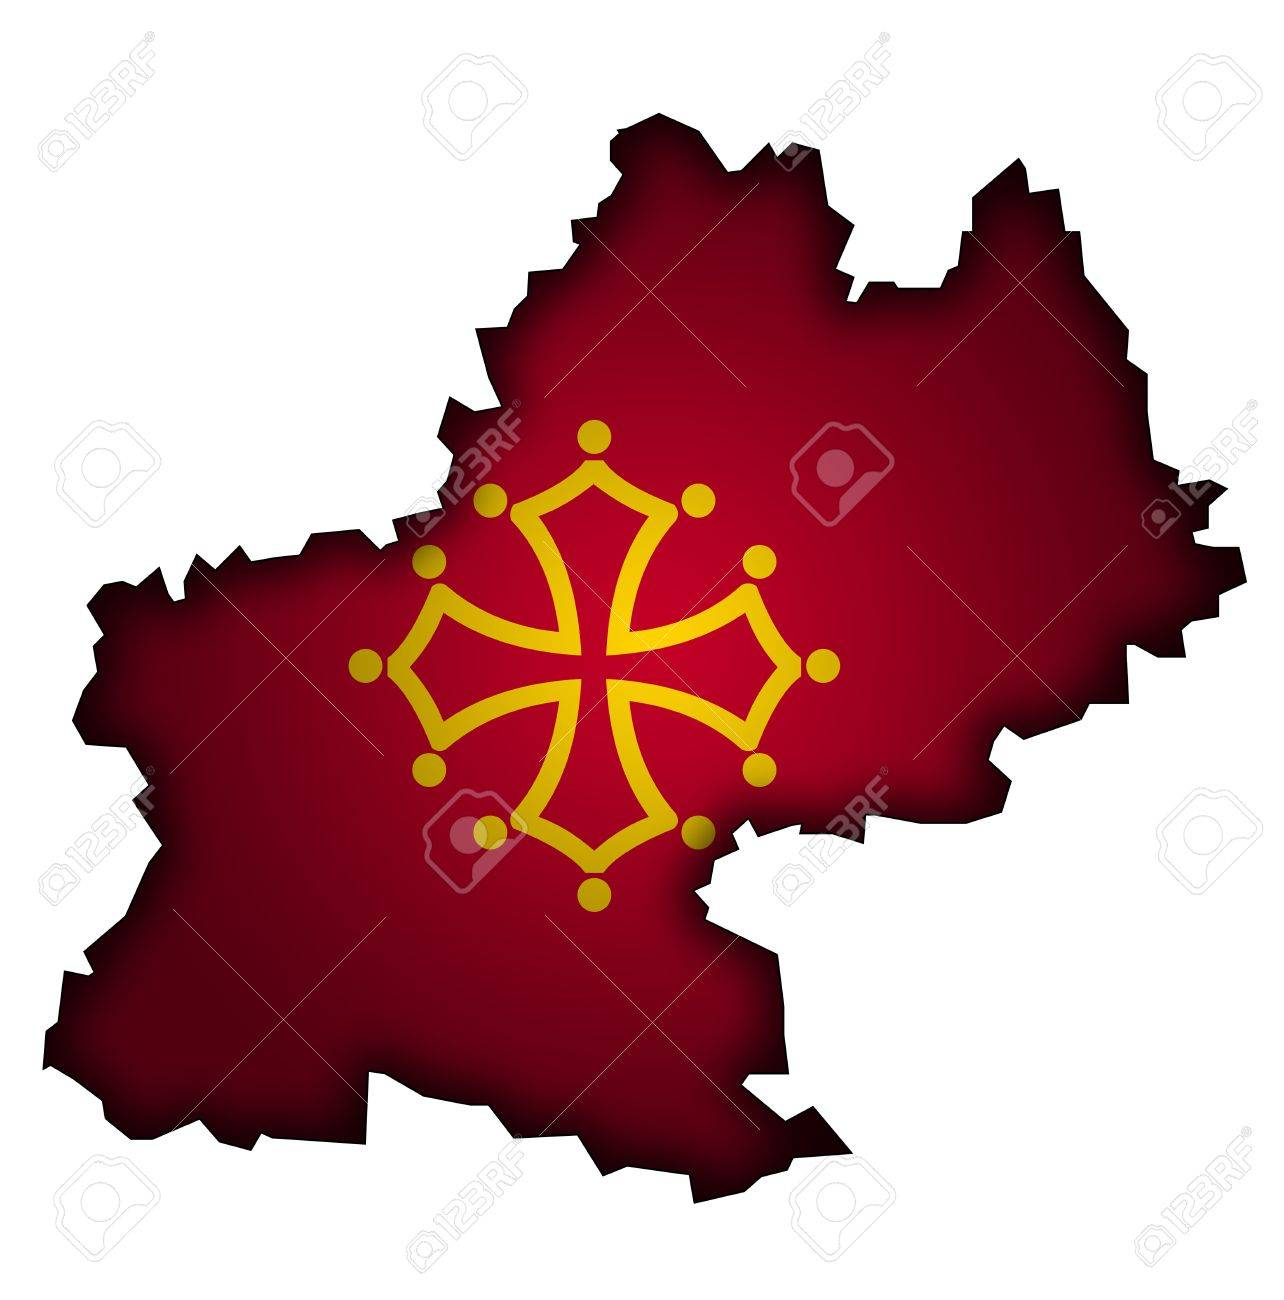 old map with flag of department, administrative region of france called midi pyrenees Stock Photo - 11495712